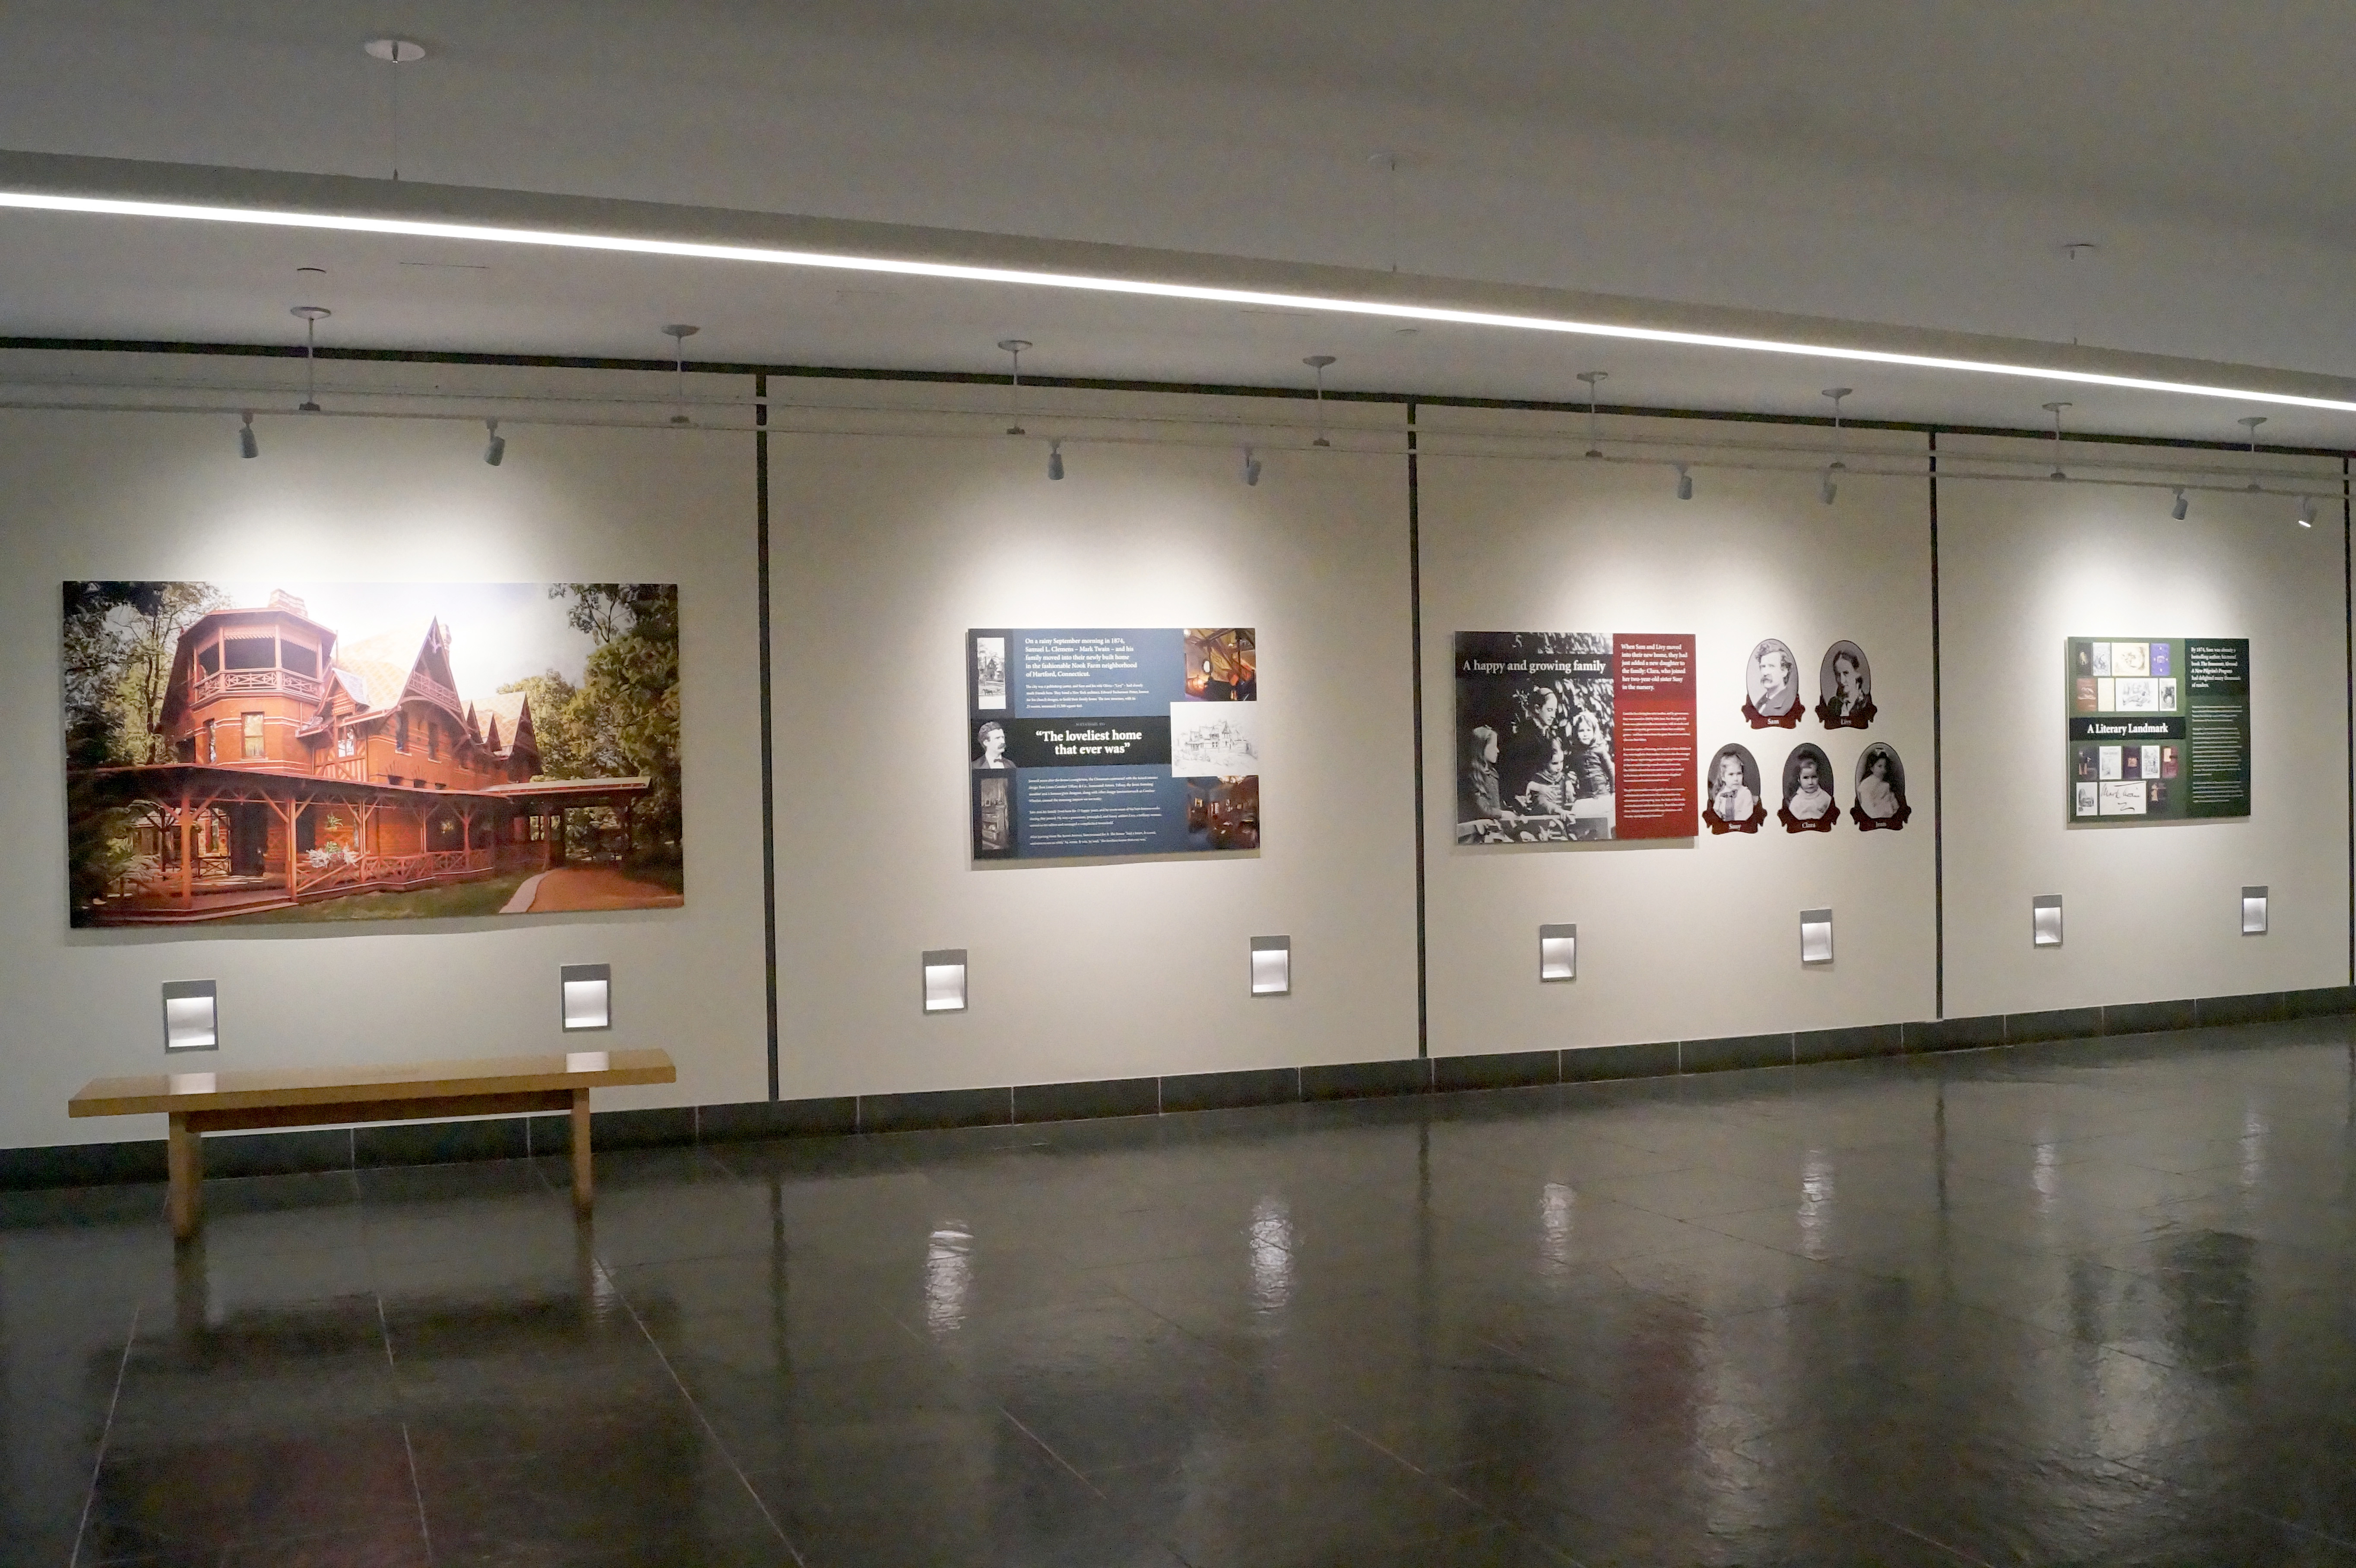 Informational panels located on the hall walls provide information to visitors as the explore the Museum Center.